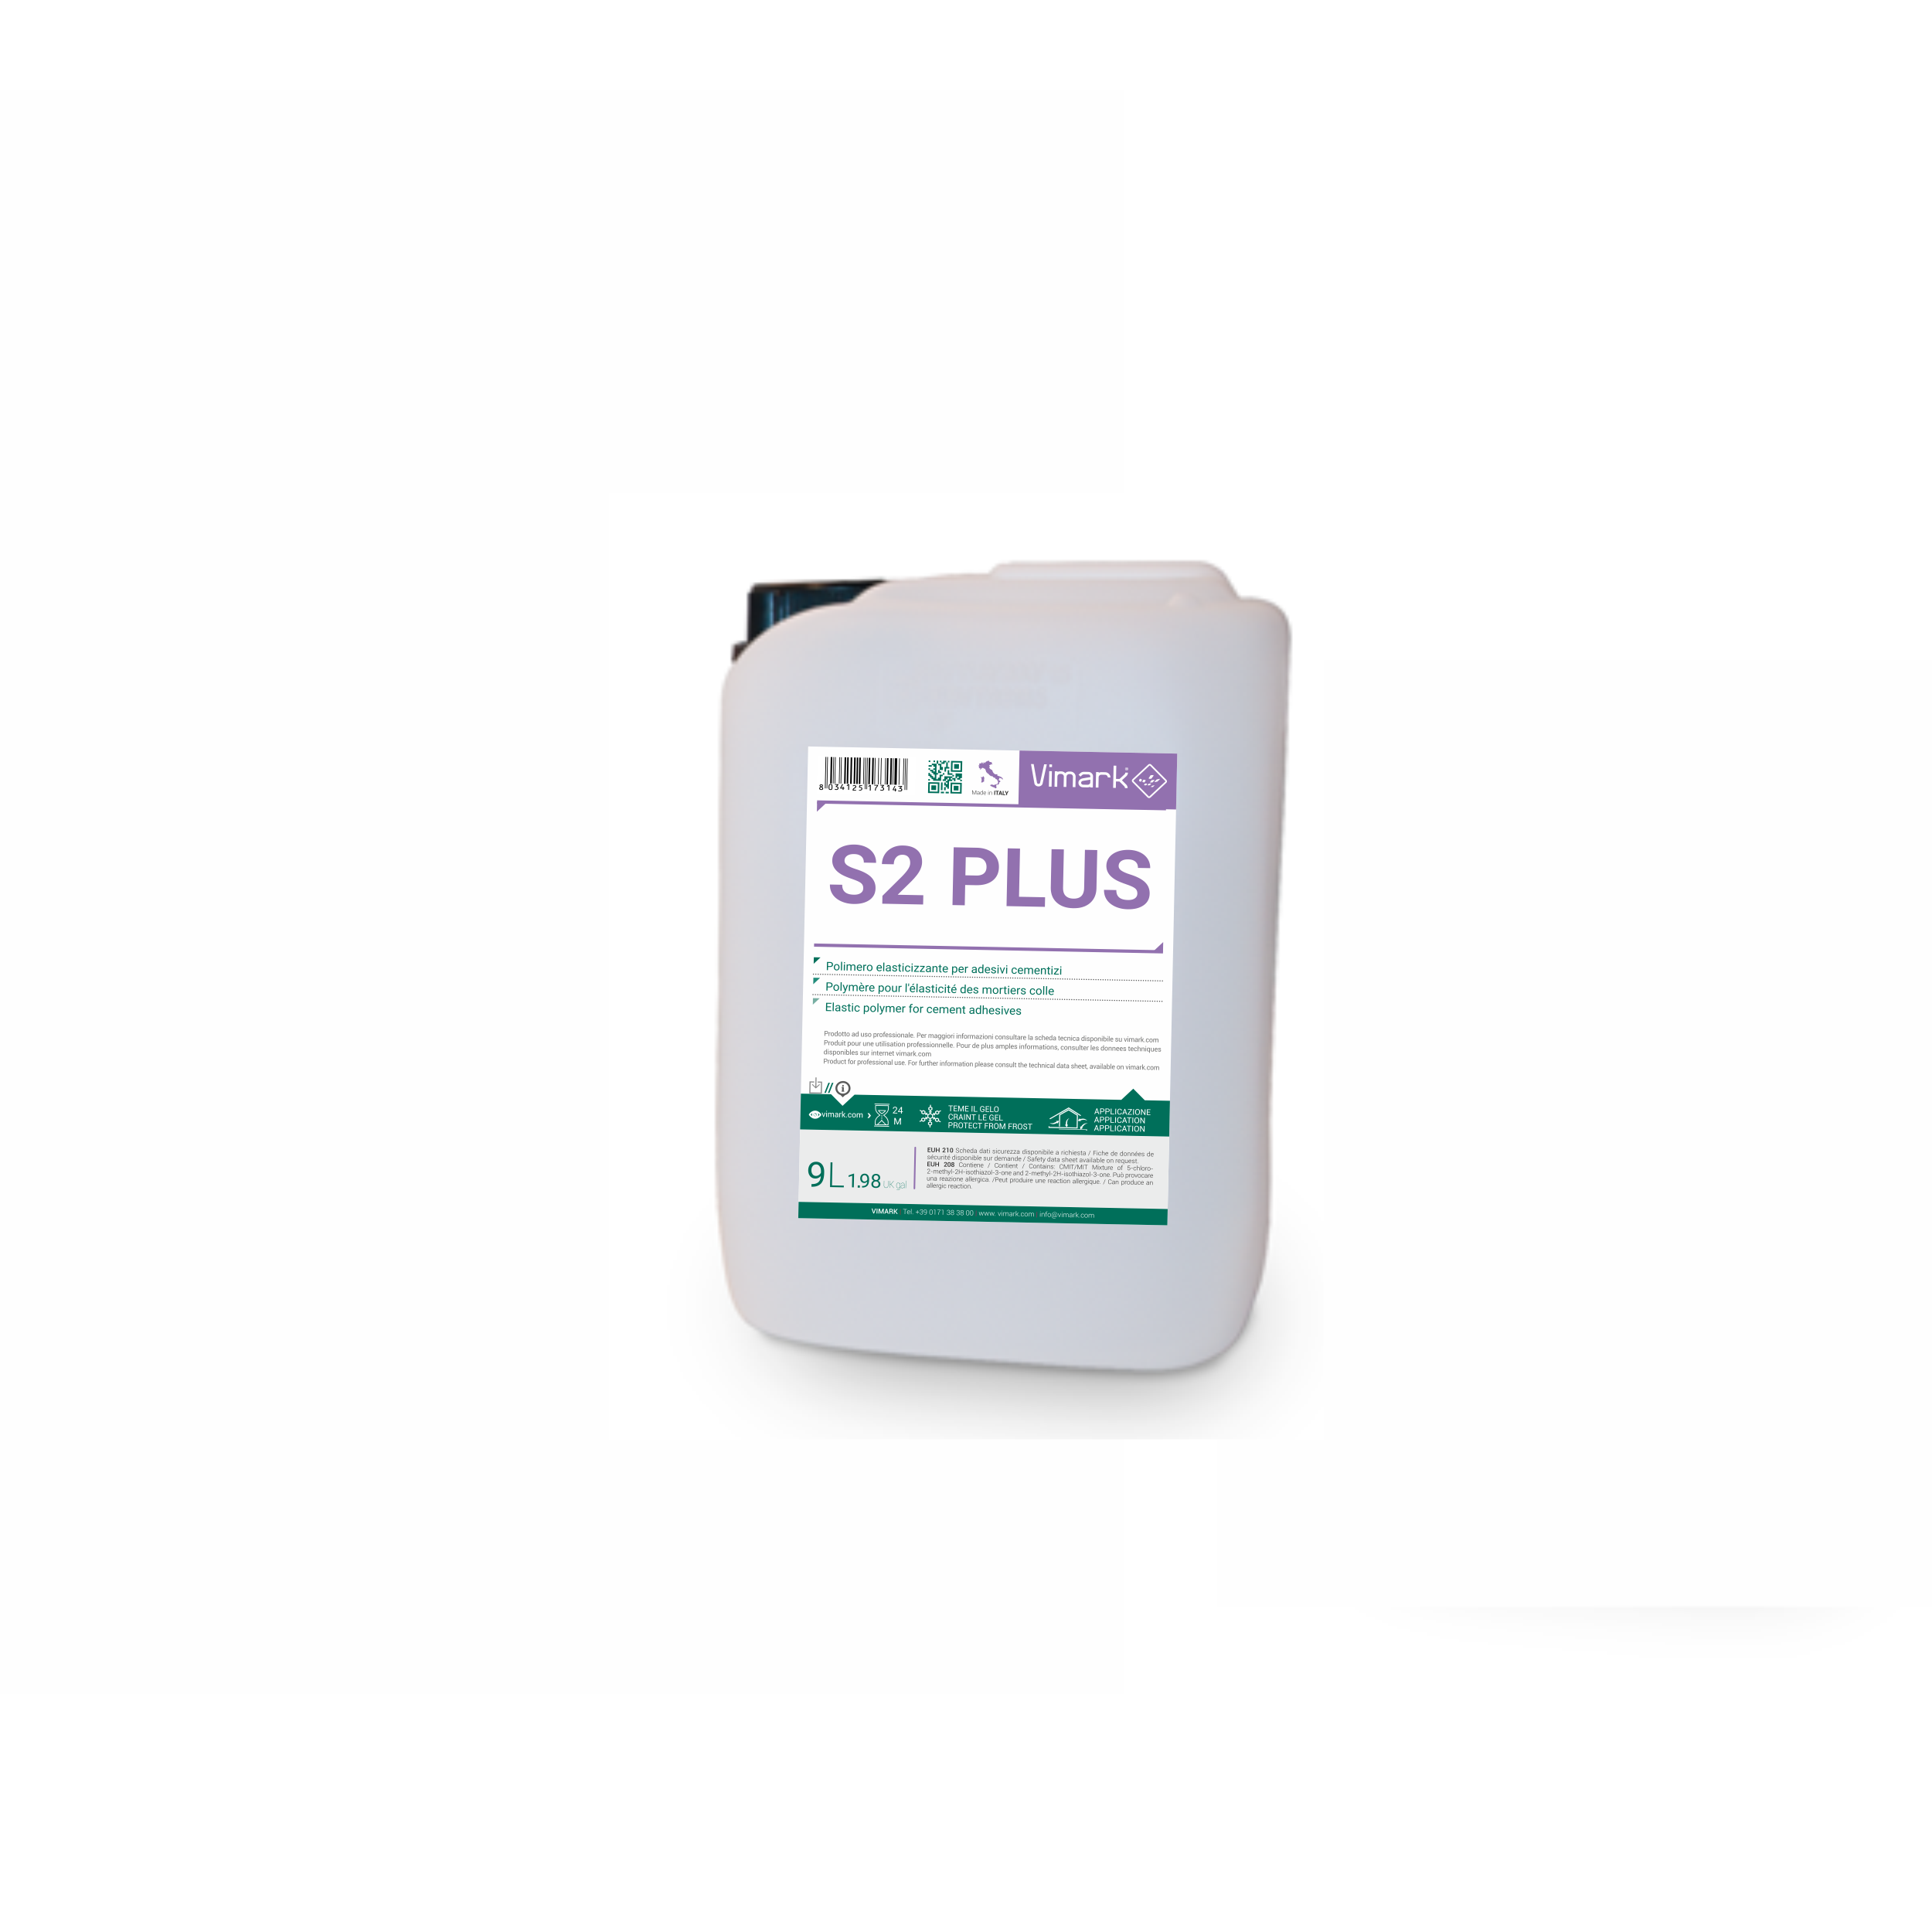 Polymeric admixture for adhesives S2 PLUS